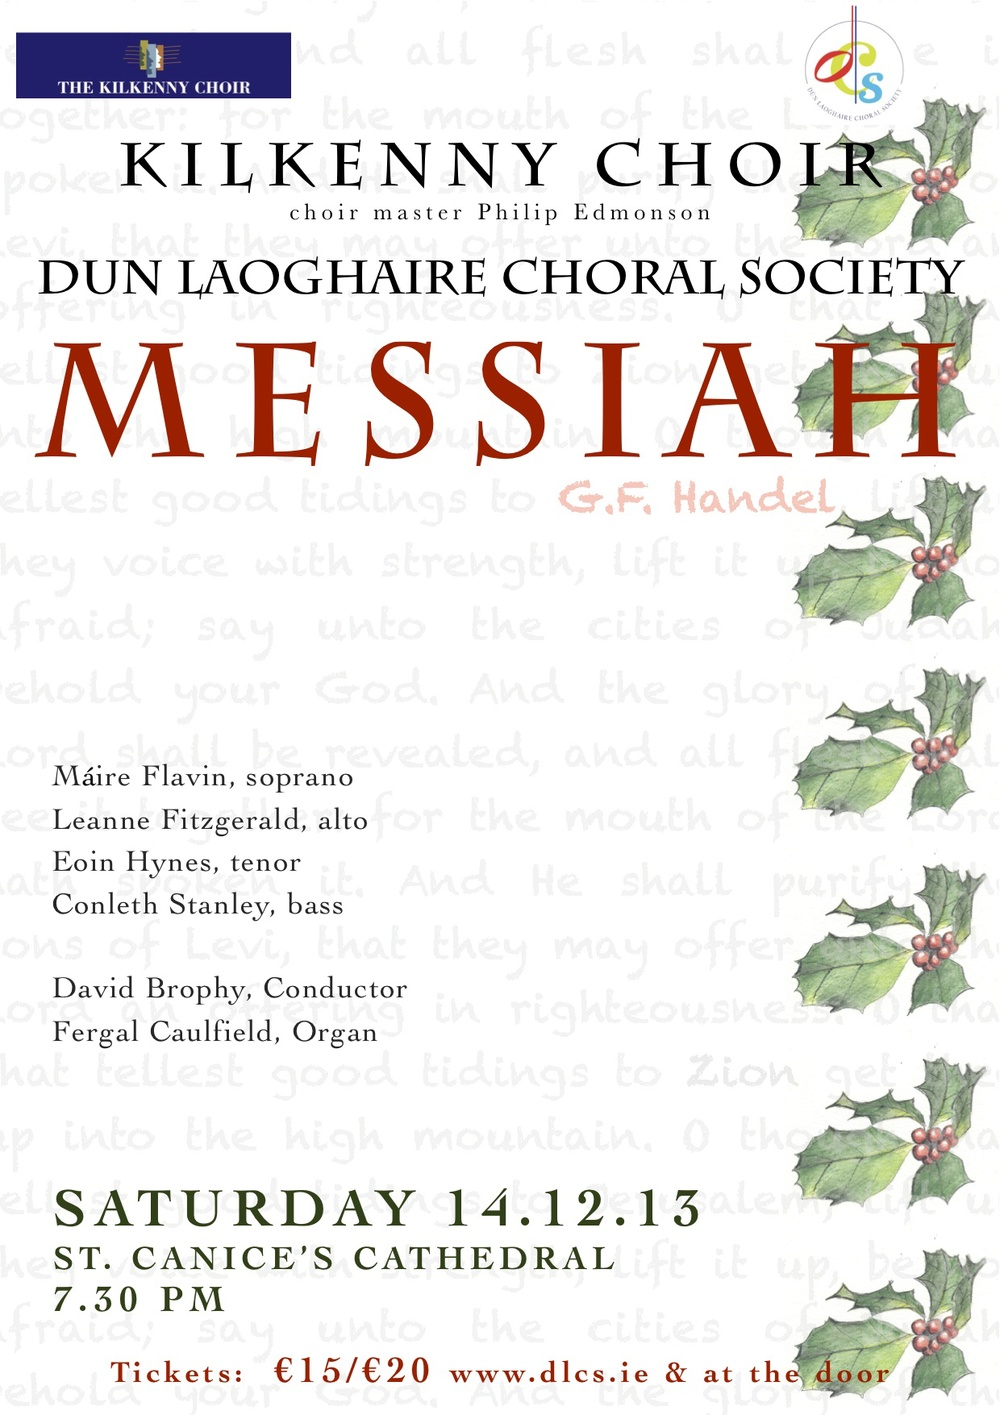 Handel's Messiah in Kilkenny, DLCS and Kilkenny Choir